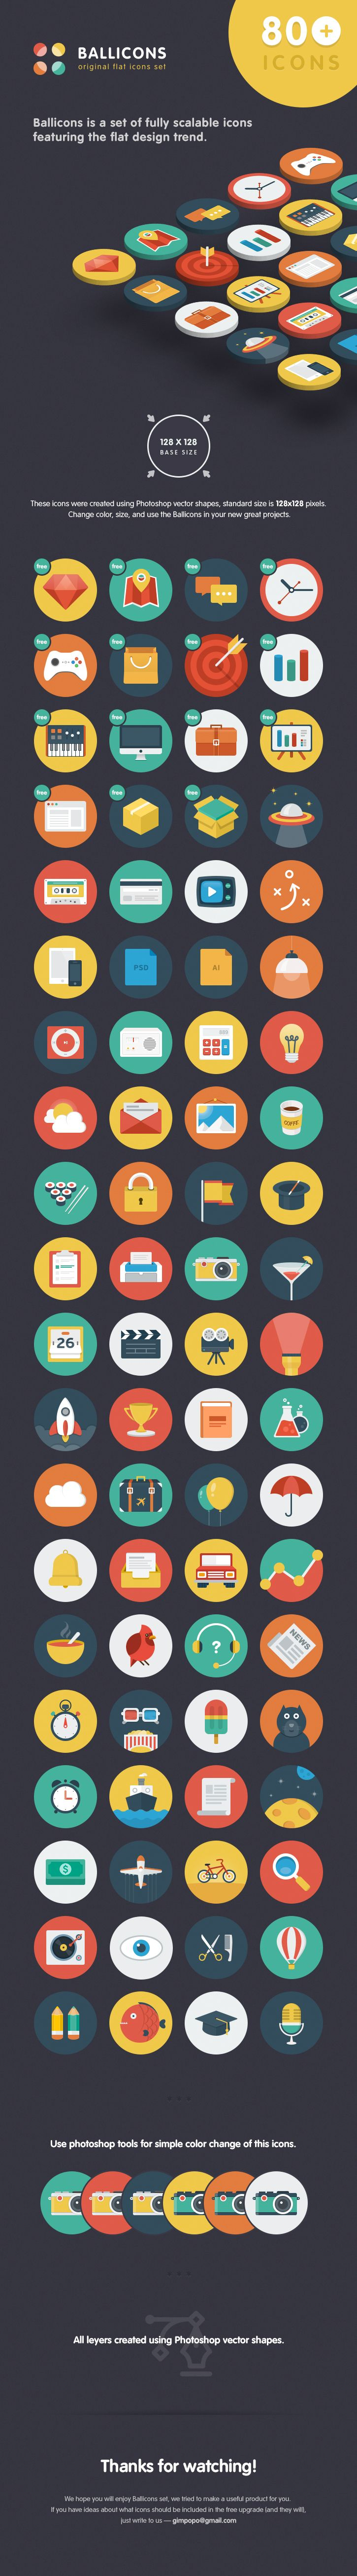 Ballicons - original flat icons set by Gimpo Studio (Nick & Oksana)